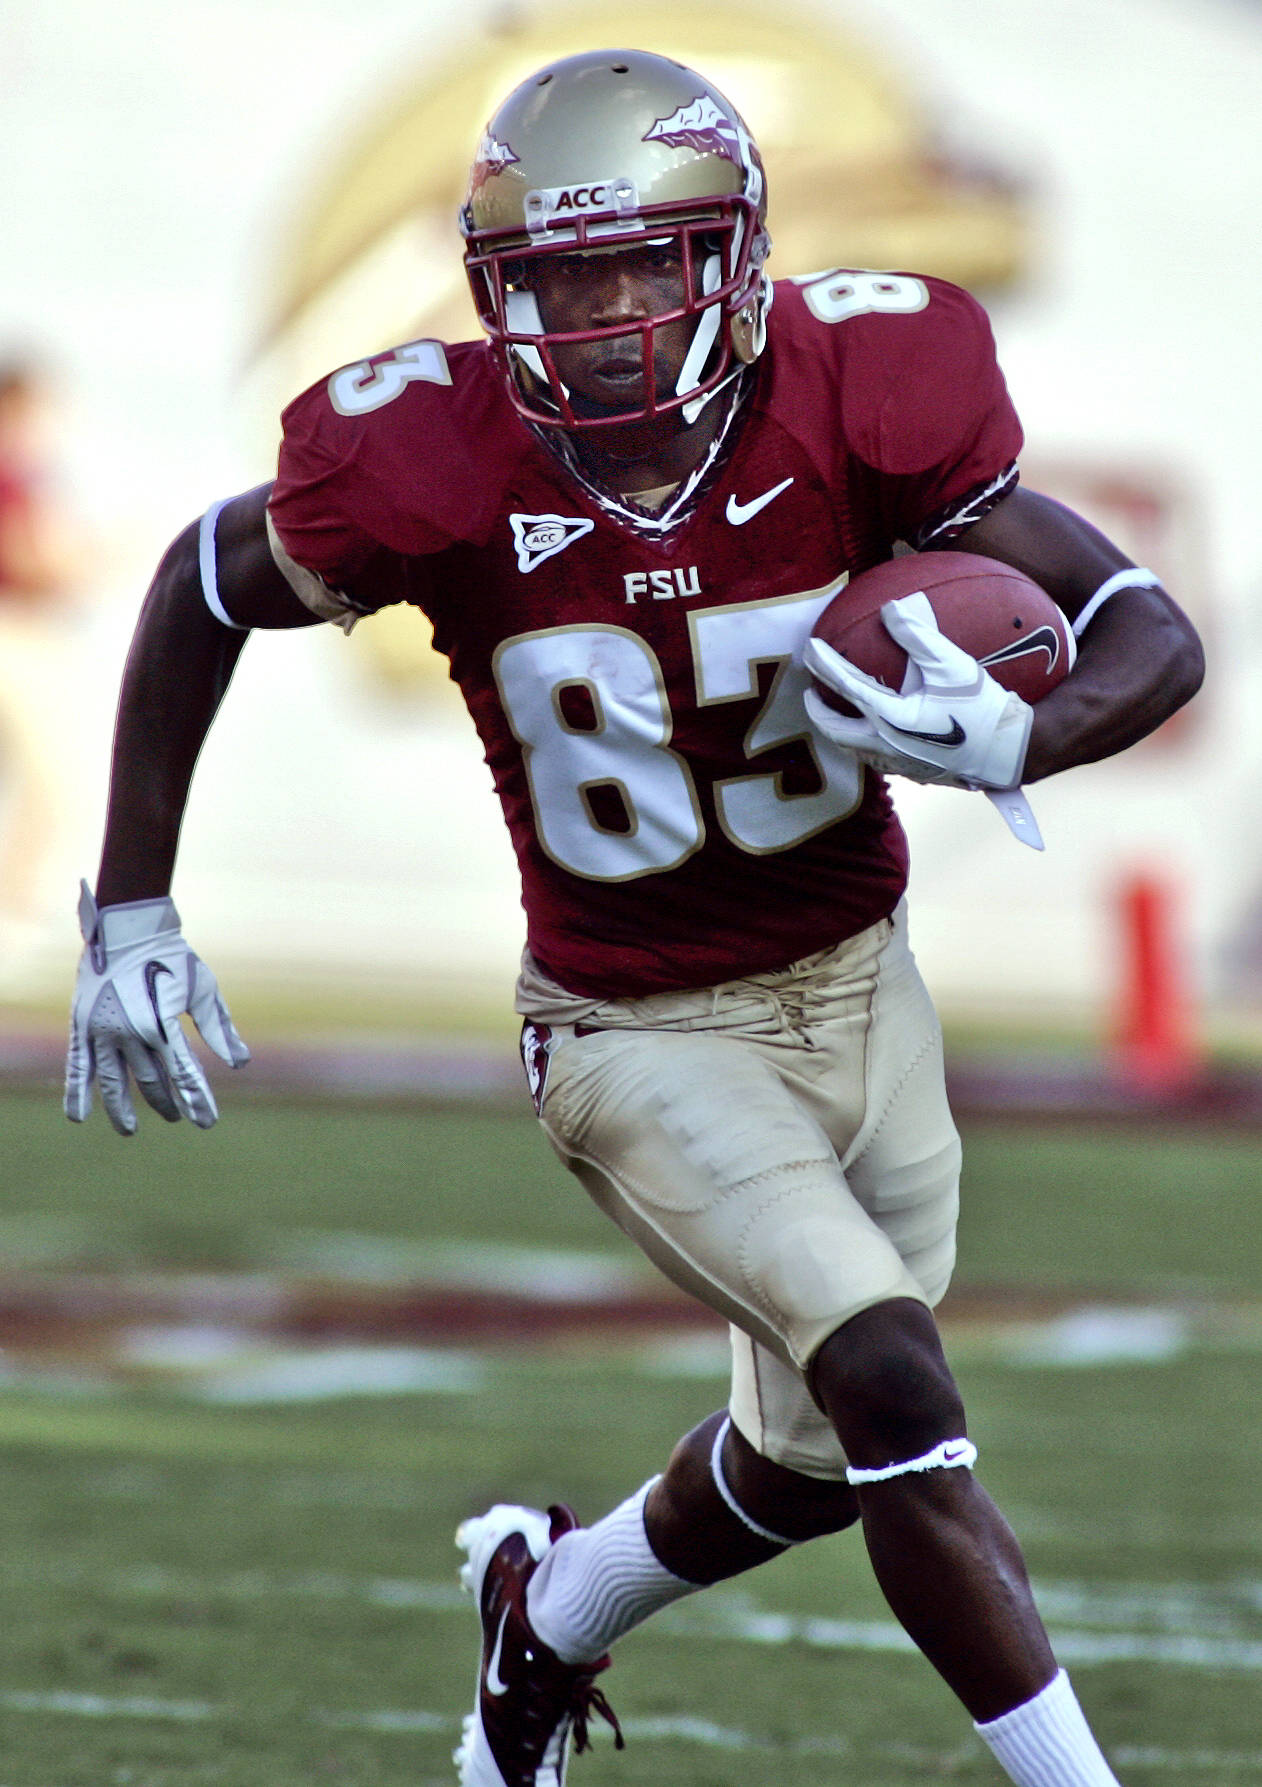 Florida State wide receiver Bert Reed (83) runs against Charleston Southern in the first quarter of an NCAA college football game on Saturday, Sept. 10, 2011, in Tallahassee, Fla. Reed had two first half touchdowns. (AP Photo/Phil Sears)